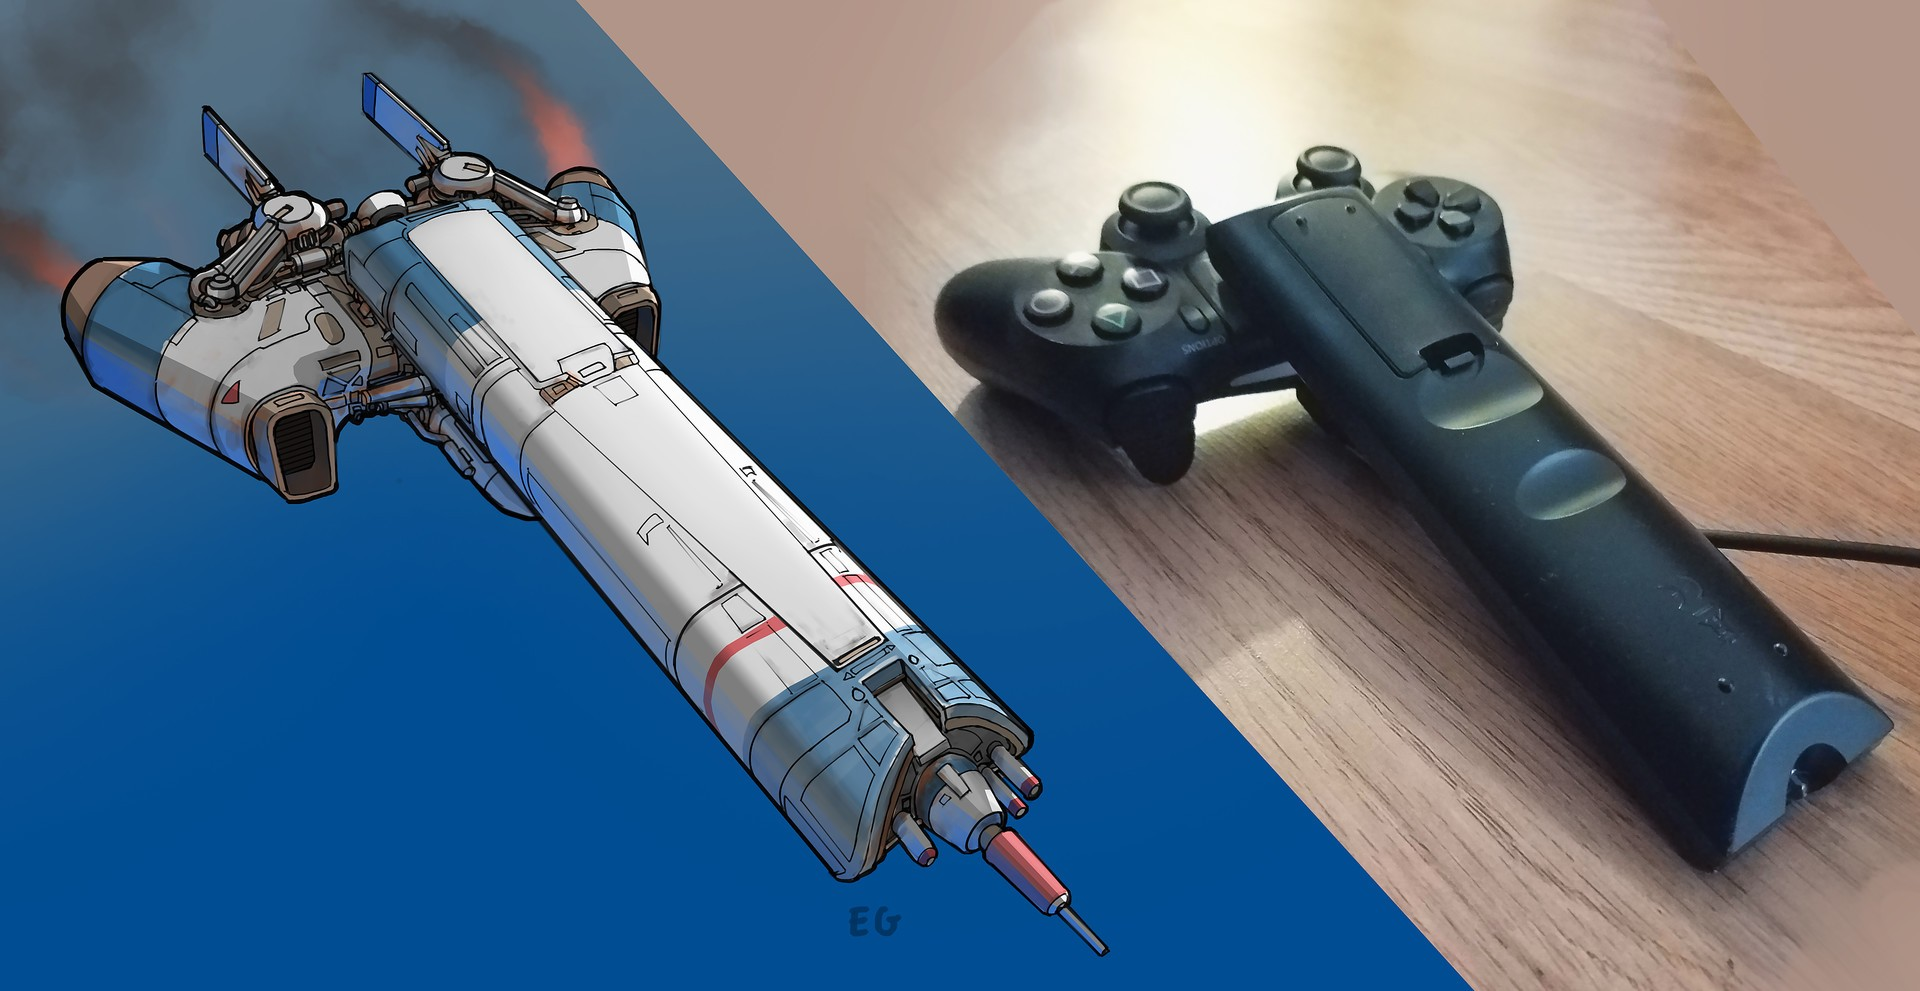 Check Out These Amazing Spaceships Inspired By Simple